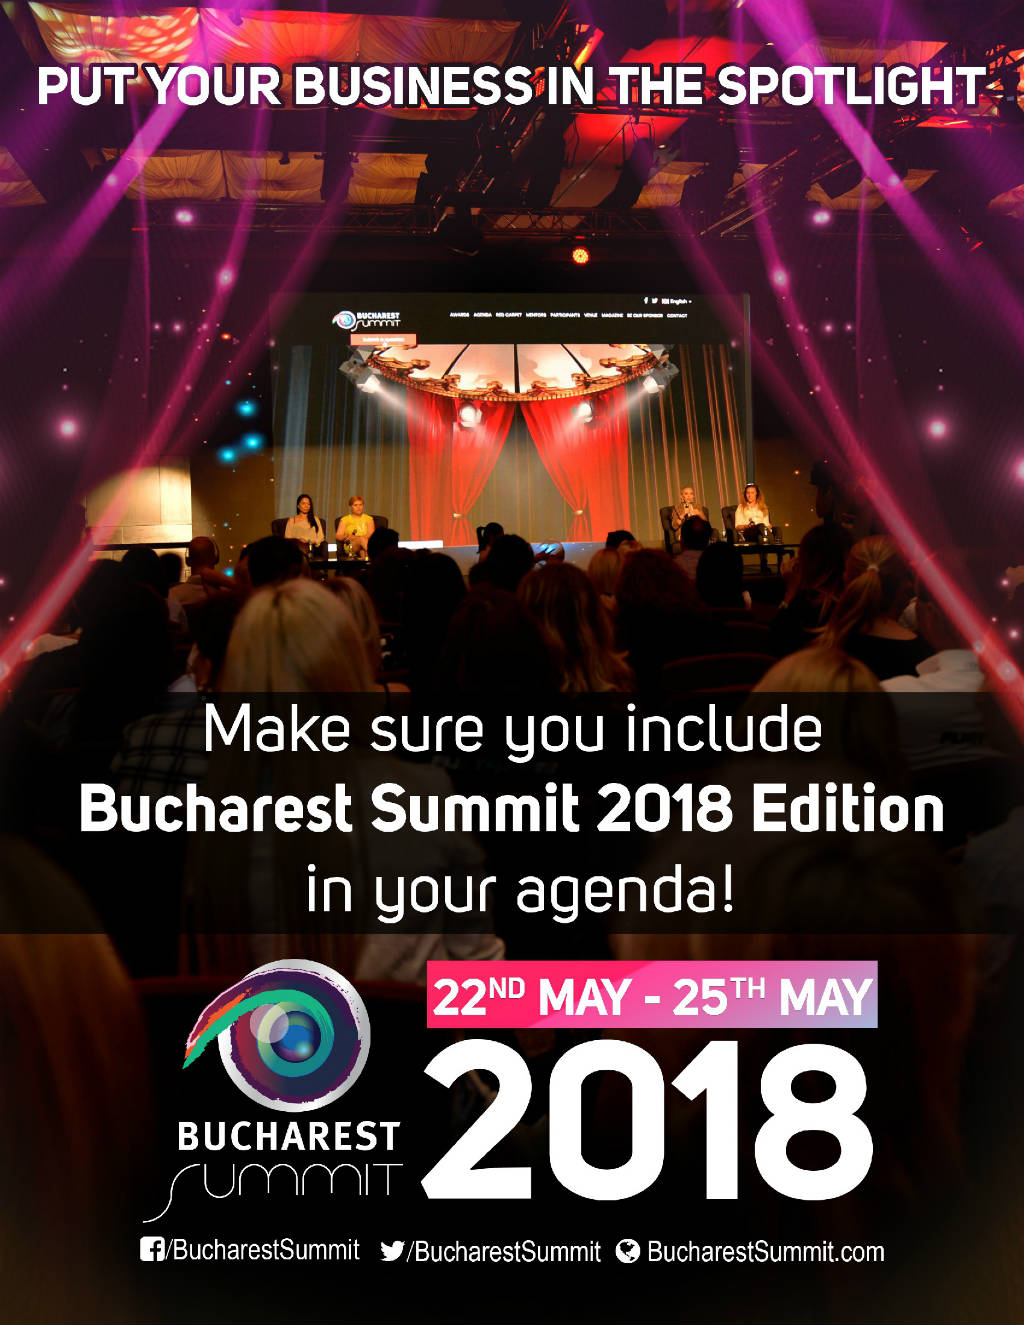 Full Poster ad for Bucharest Summit 2018.